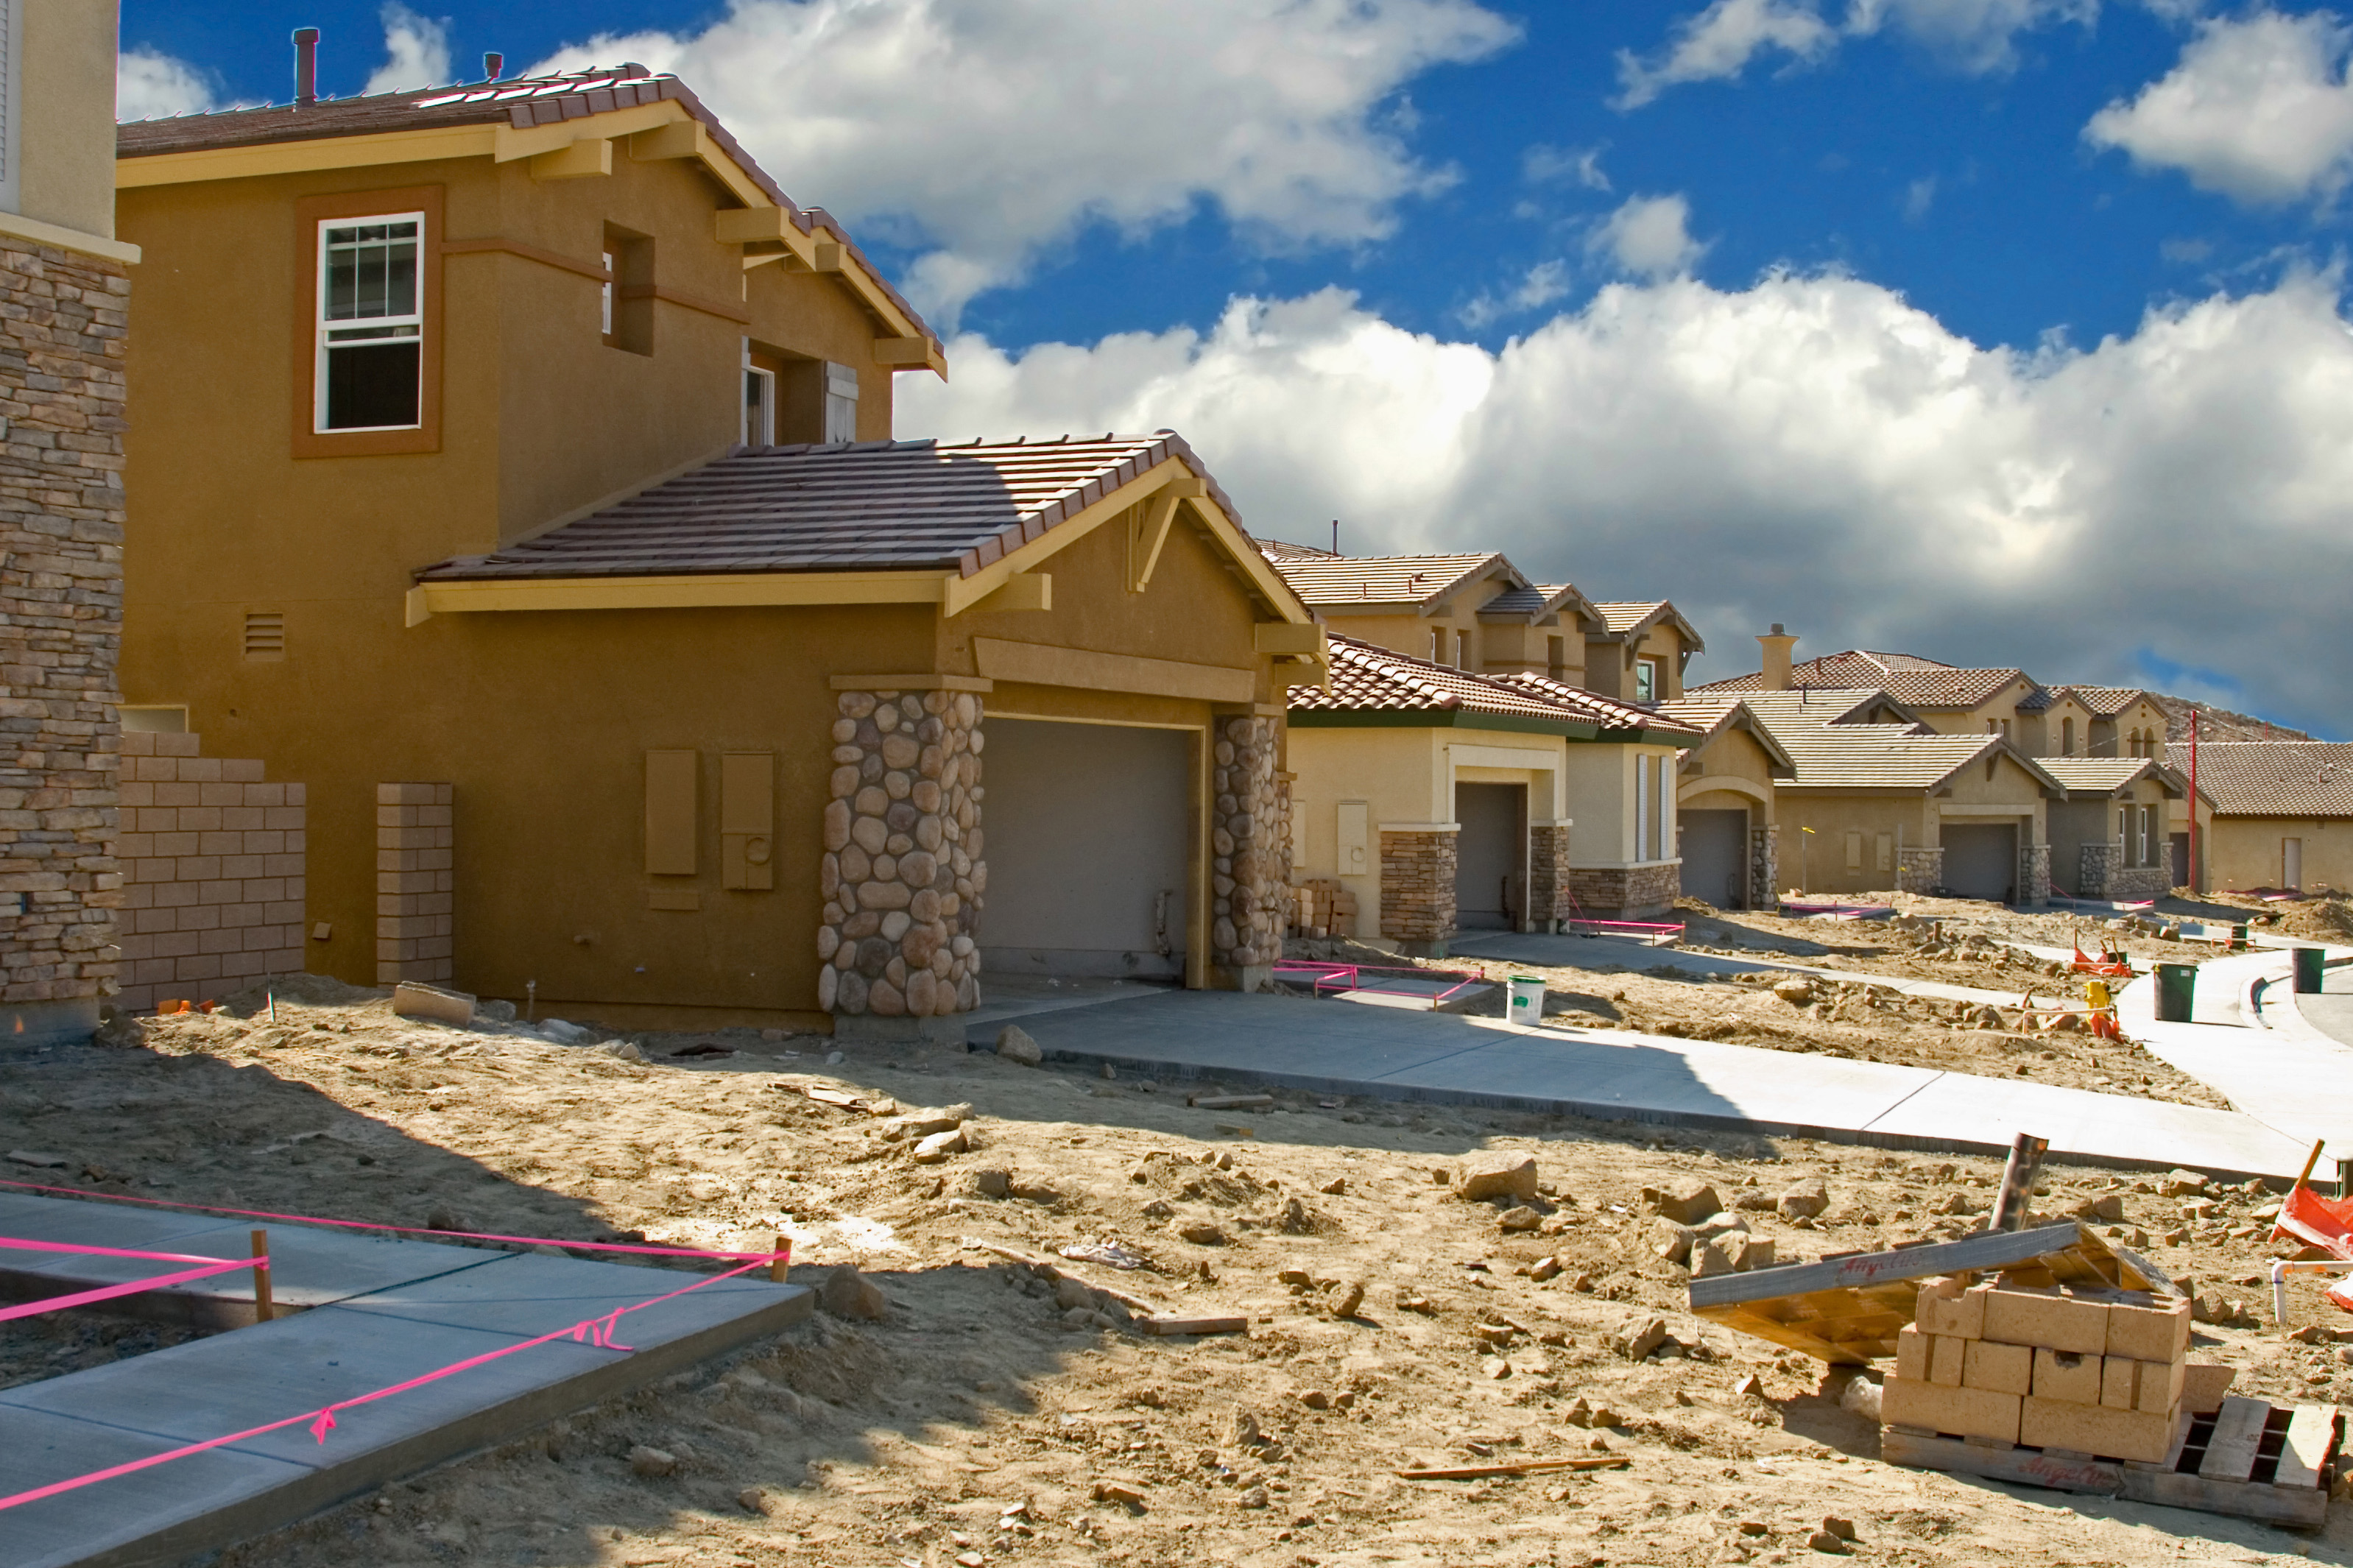 Building A New Home 10 things you must do before buying a new construction house